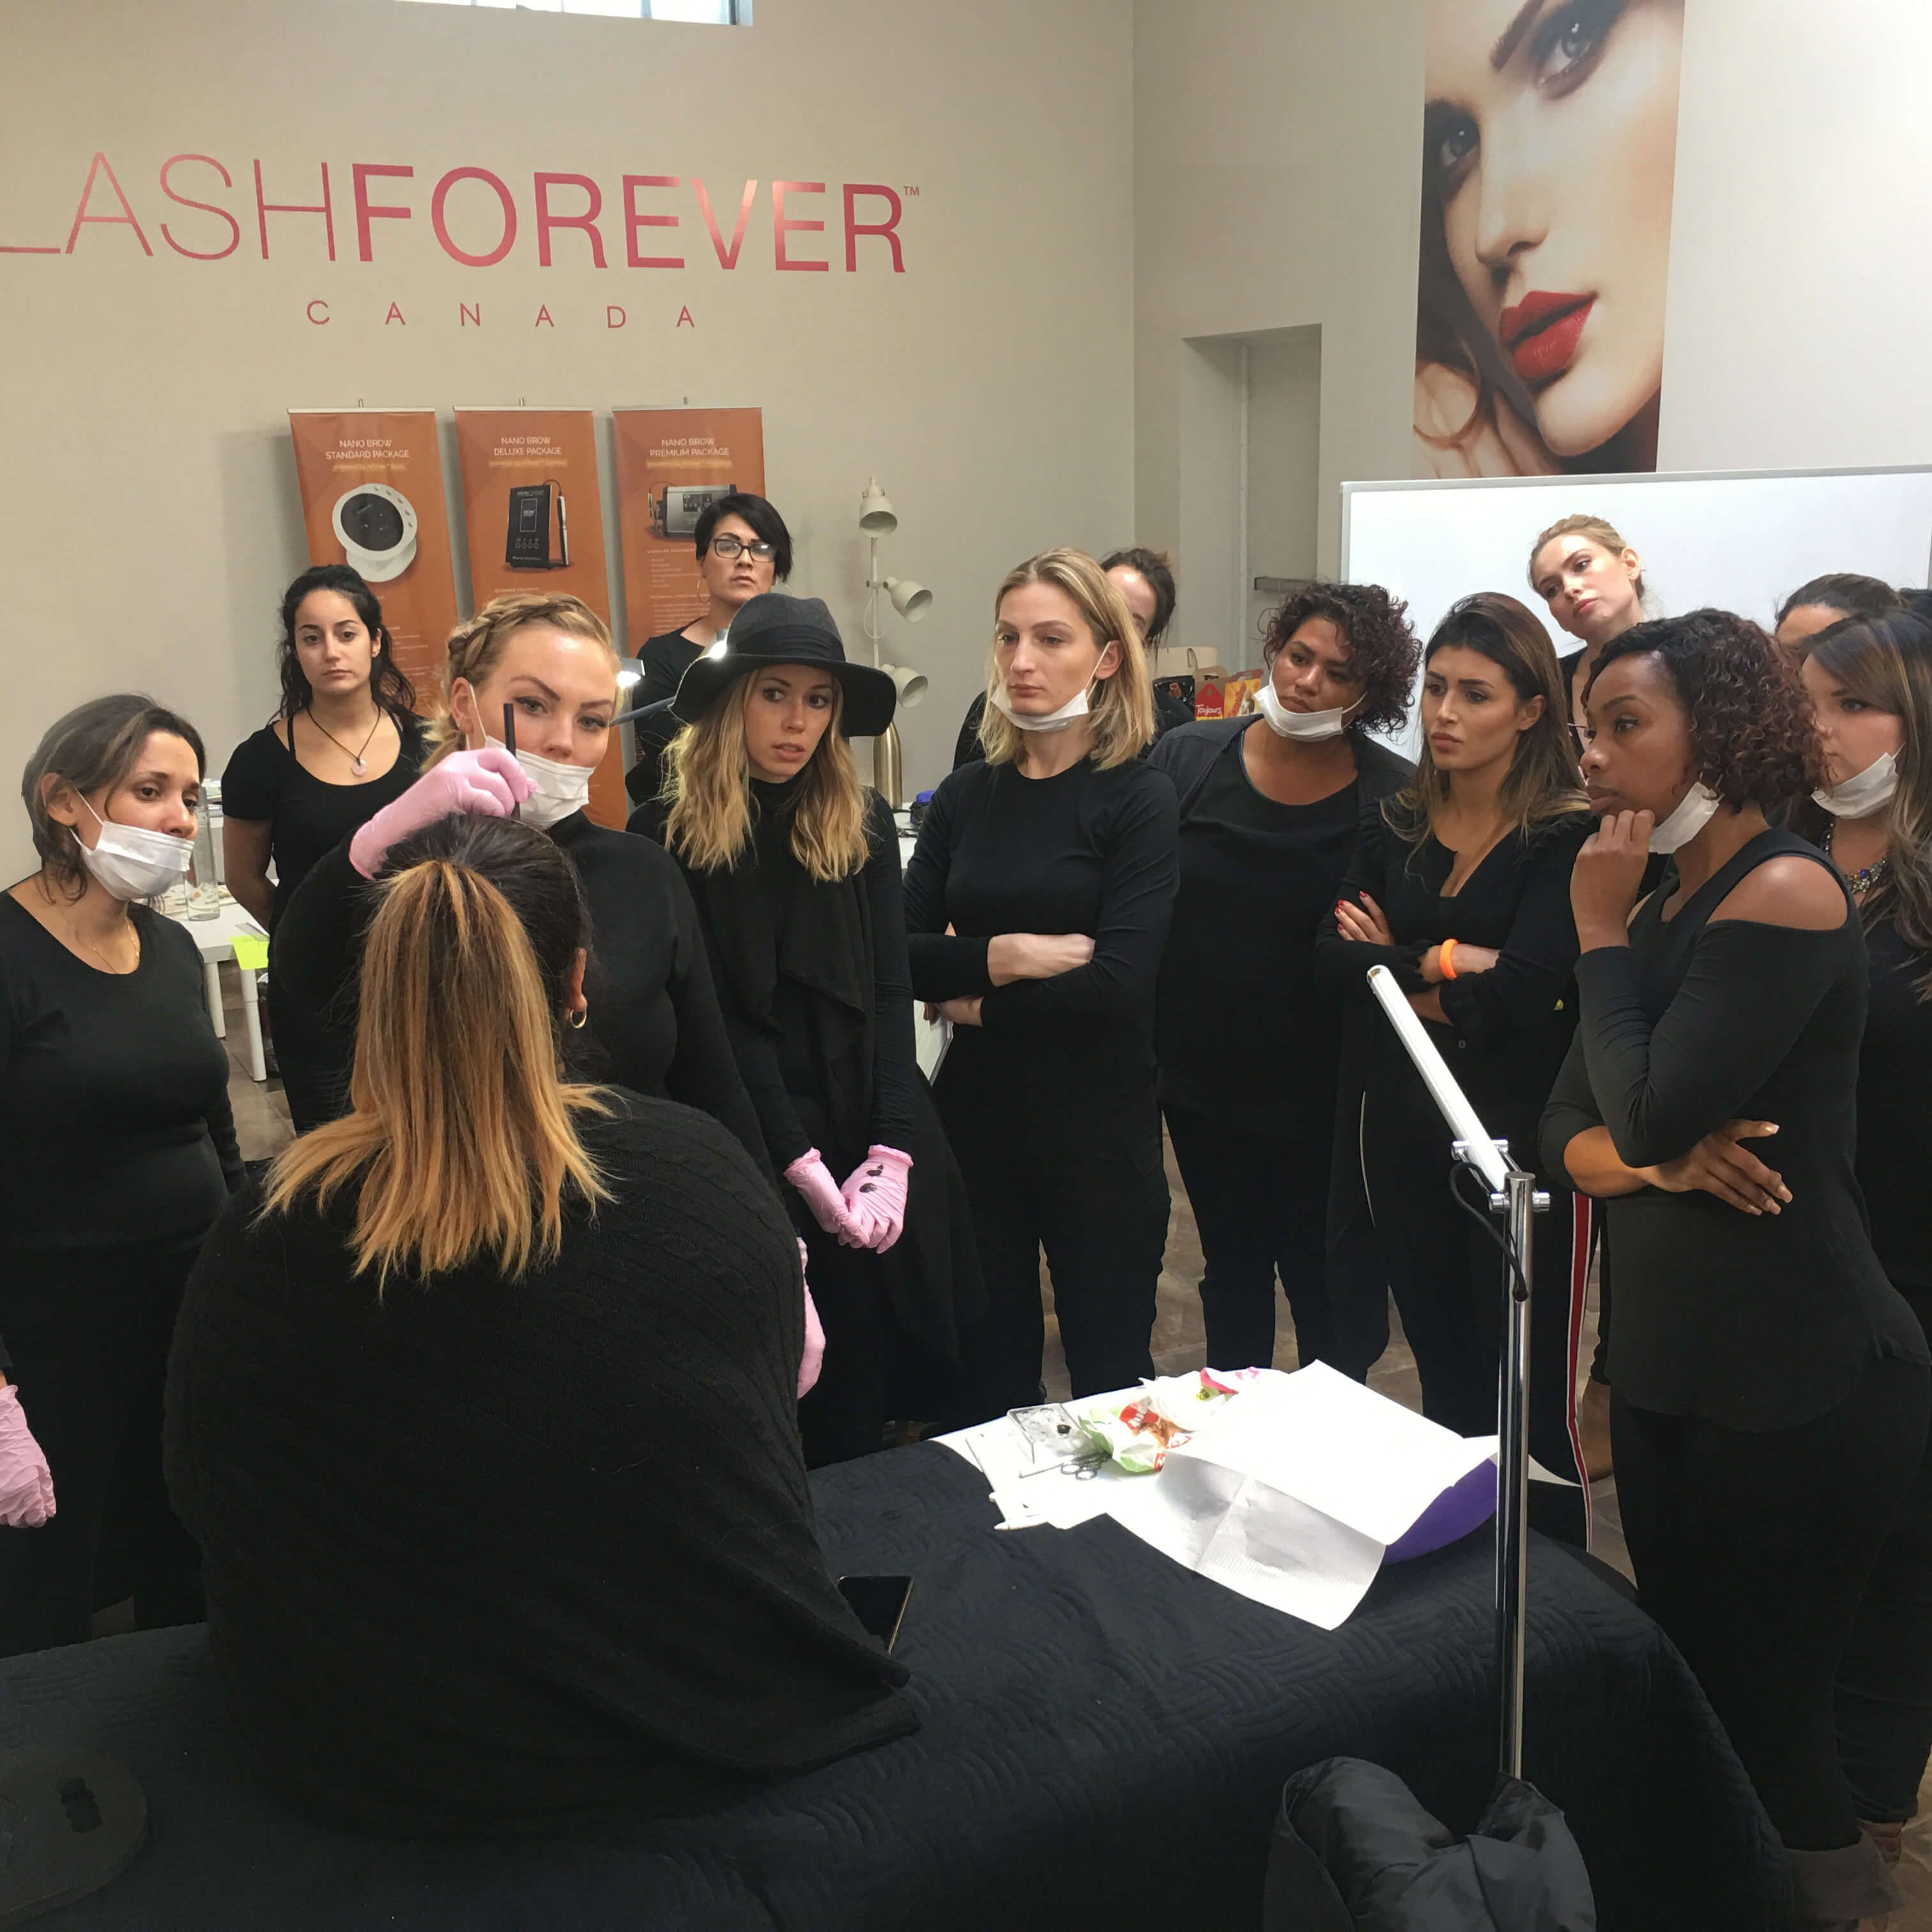 Lashforever Canada has a collection of Accredited Training